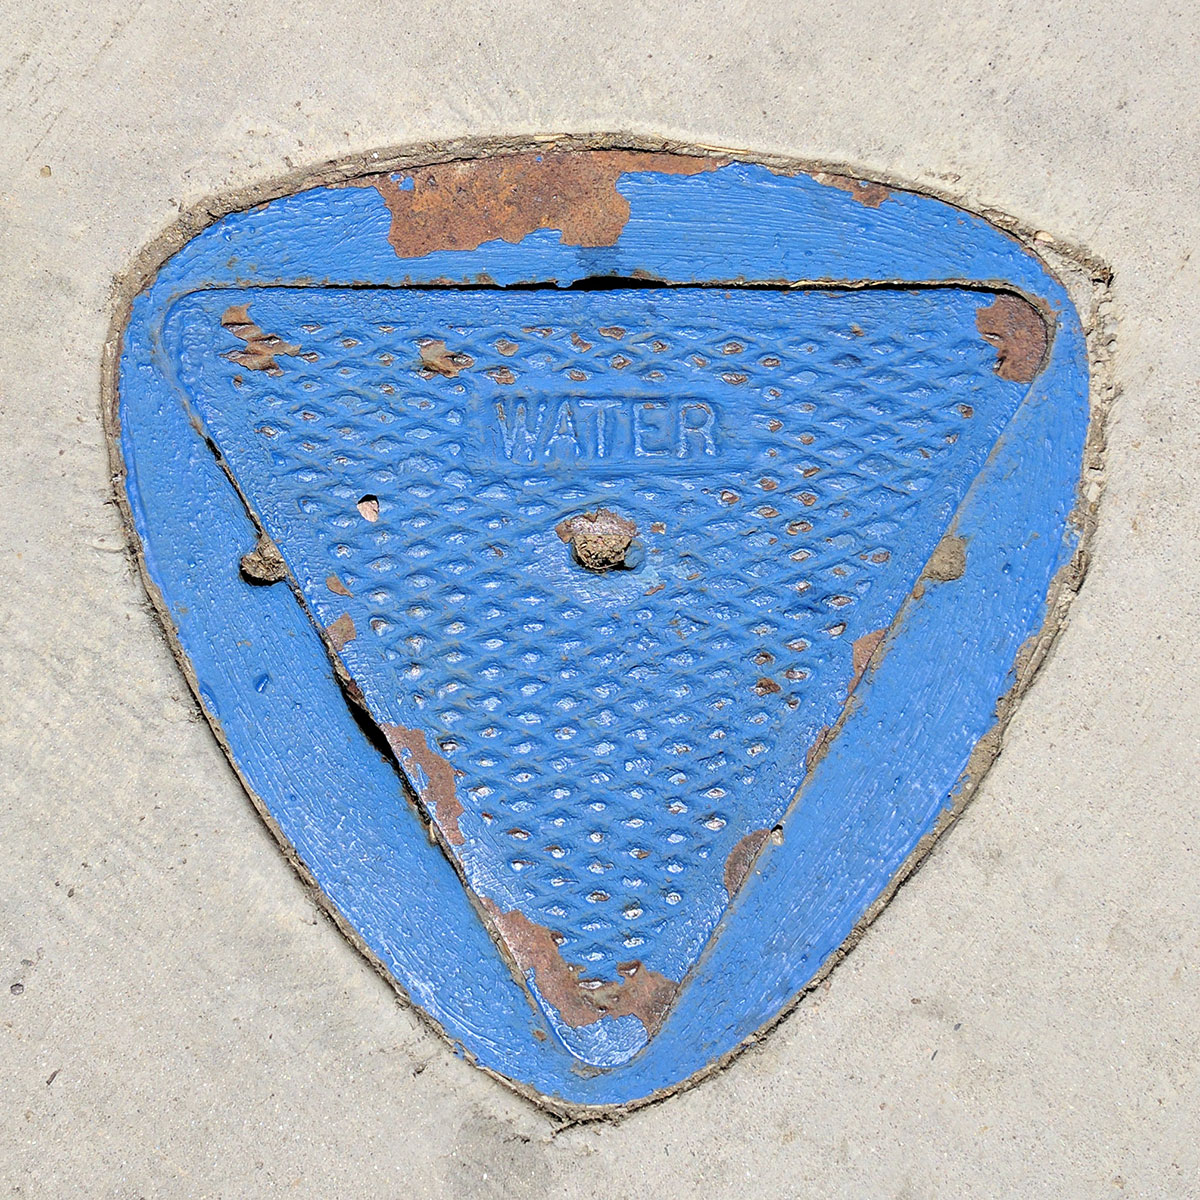 Blue metal utility cover for water